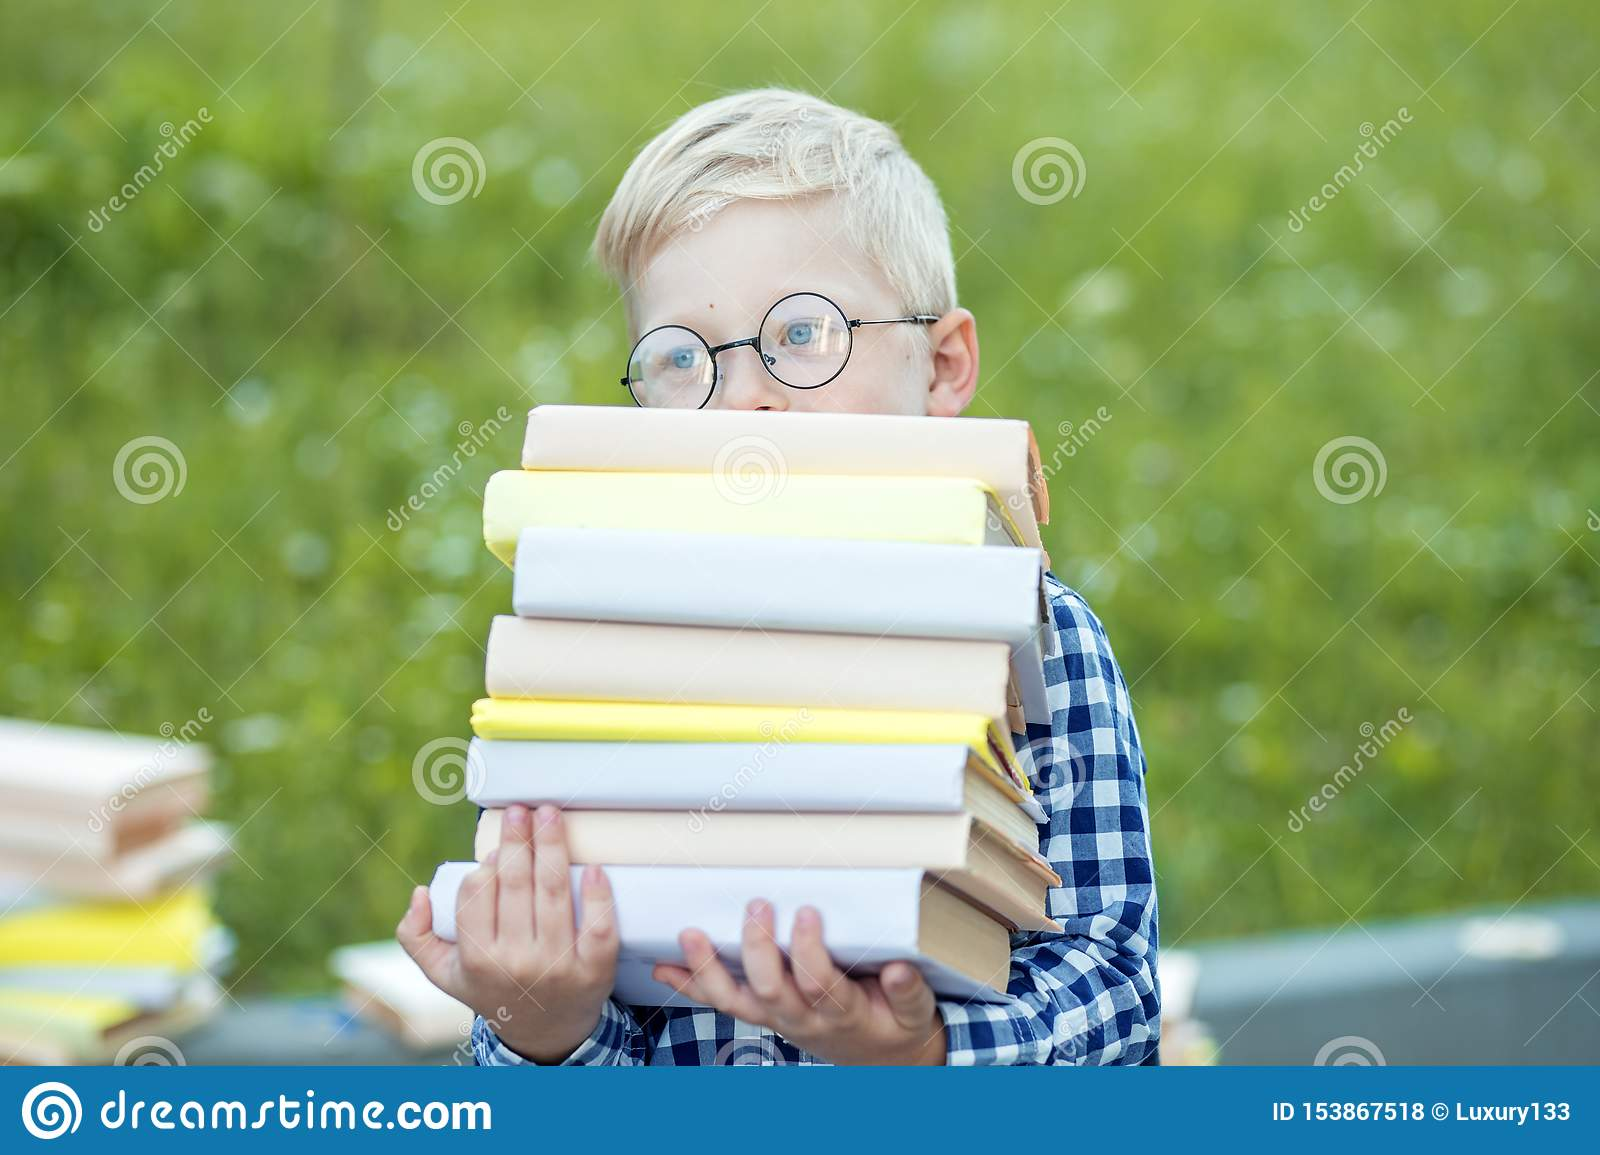 A small child holds many books in their hands. The concept of learning, school, mind, lifestyle and success